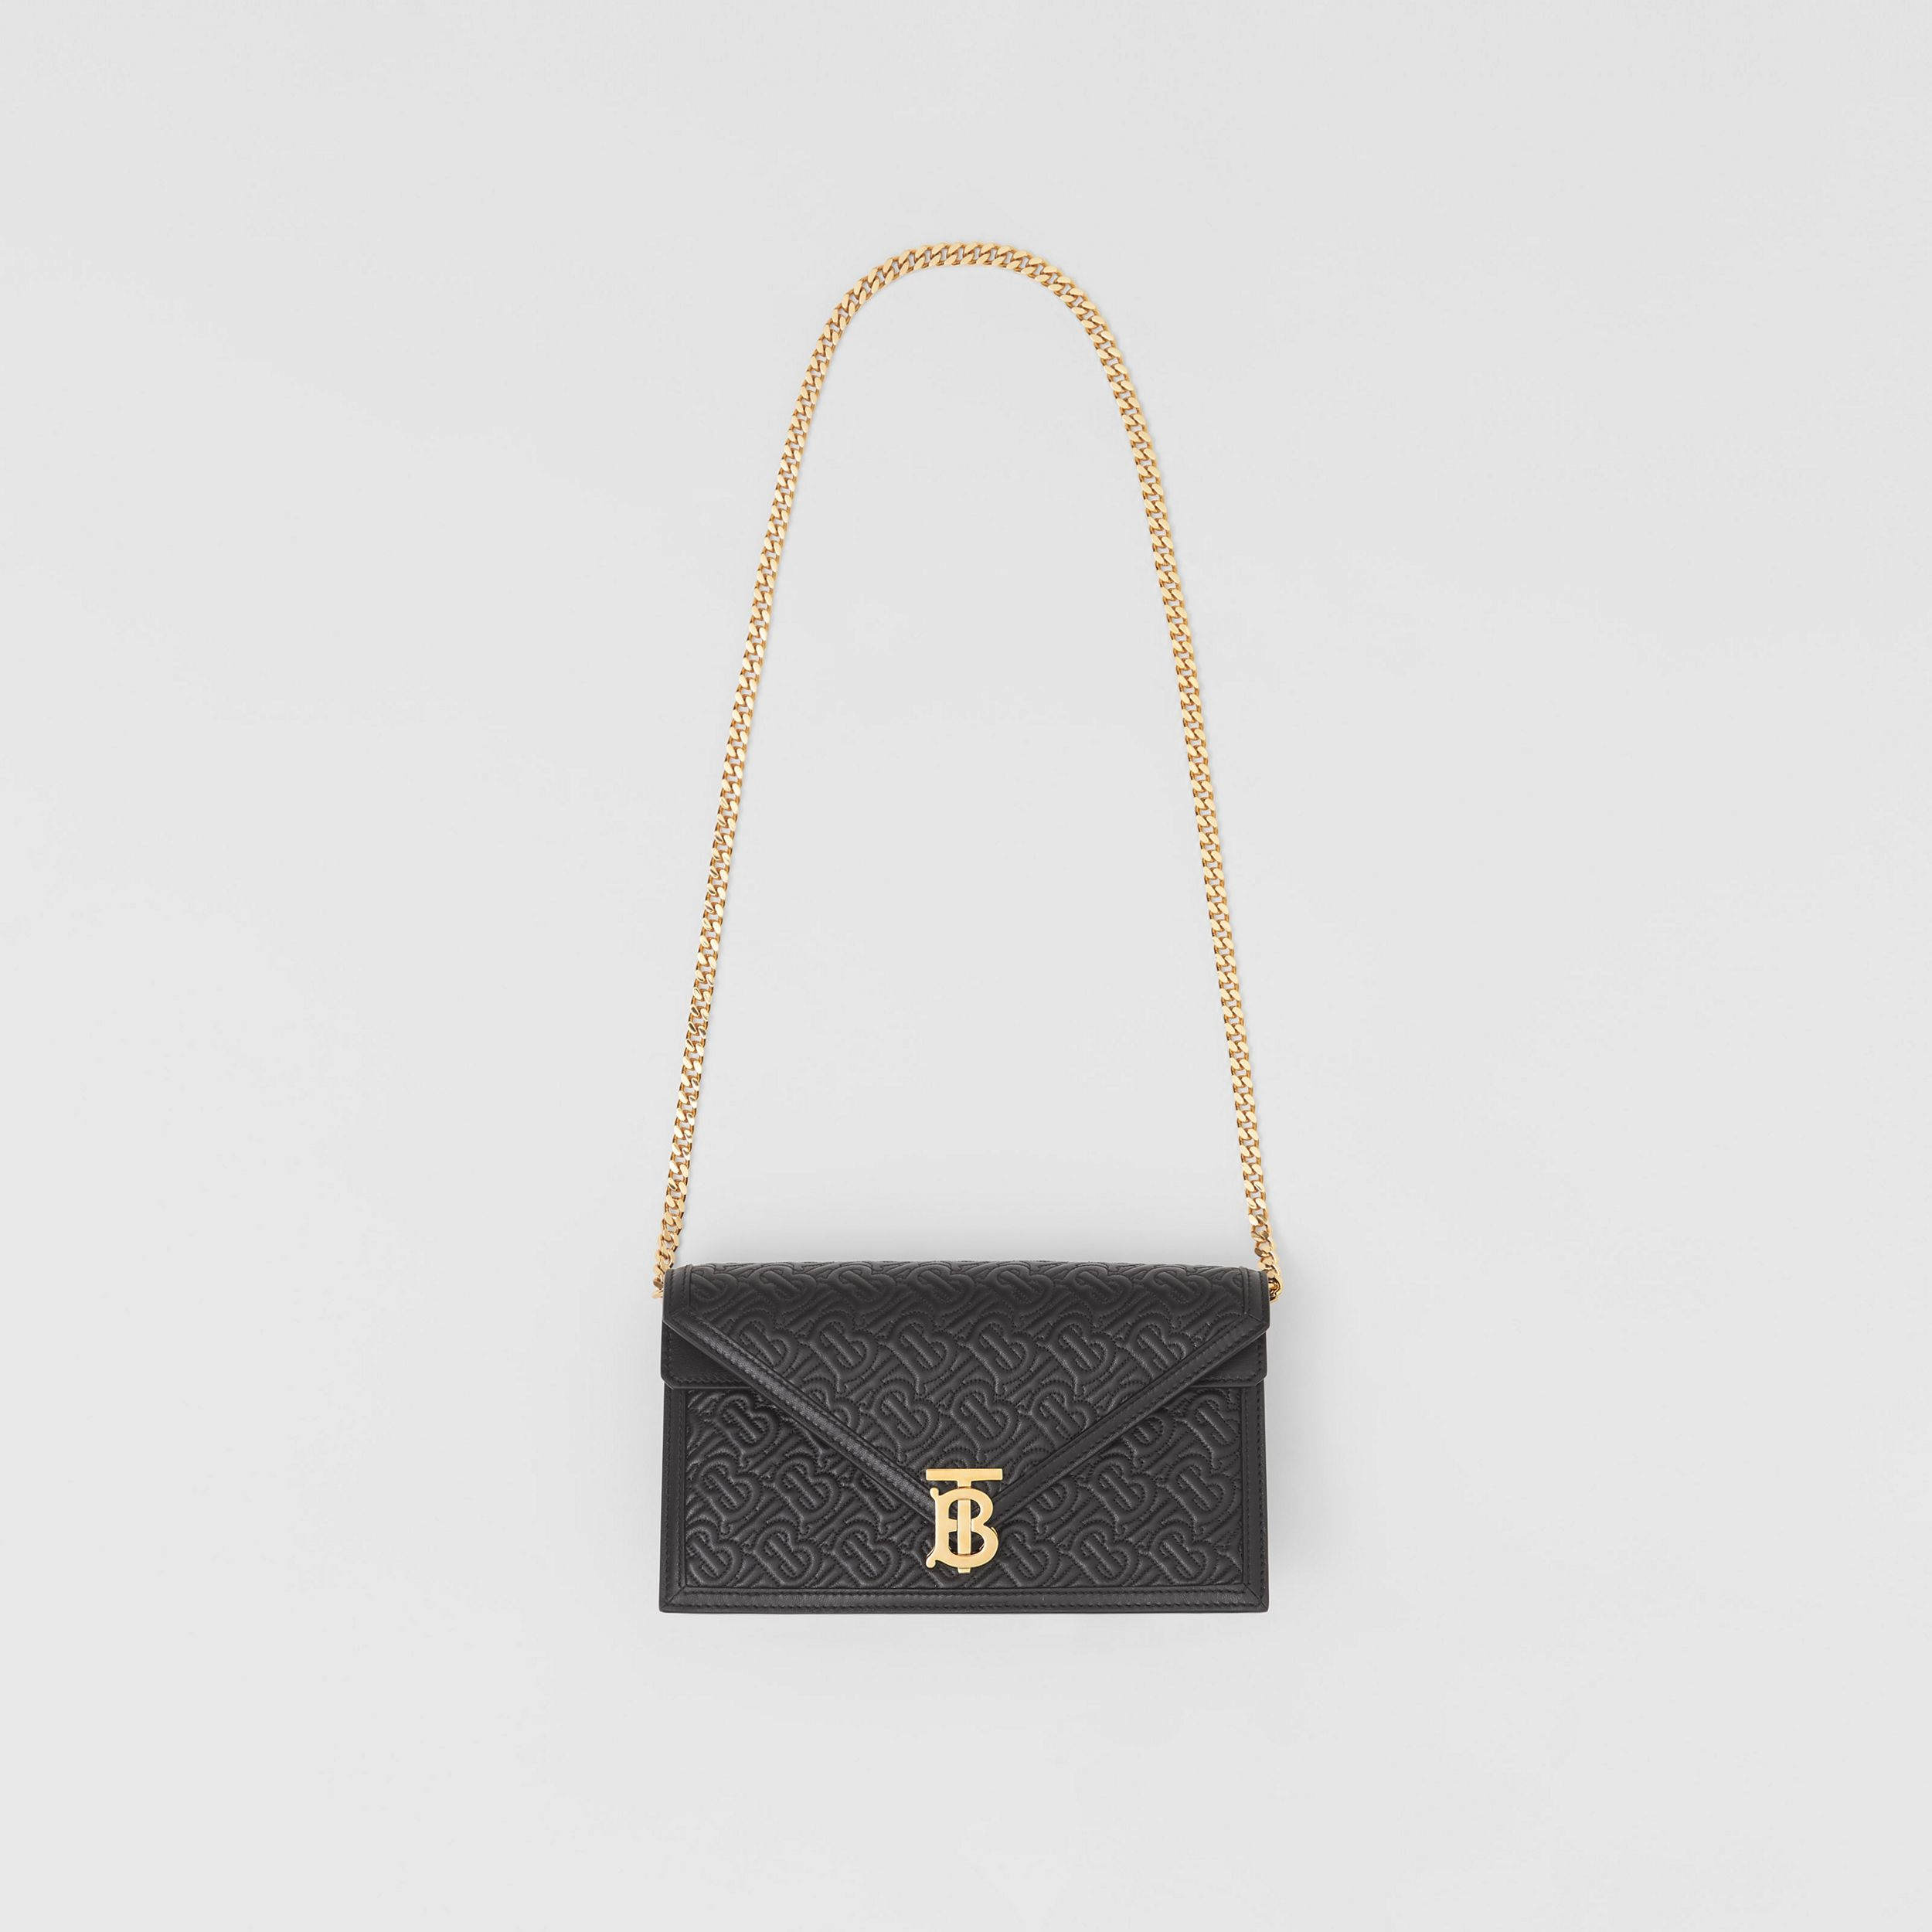 Small Quilted Monogram TB Envelope Clutch in Black - Women | Burberry - 4